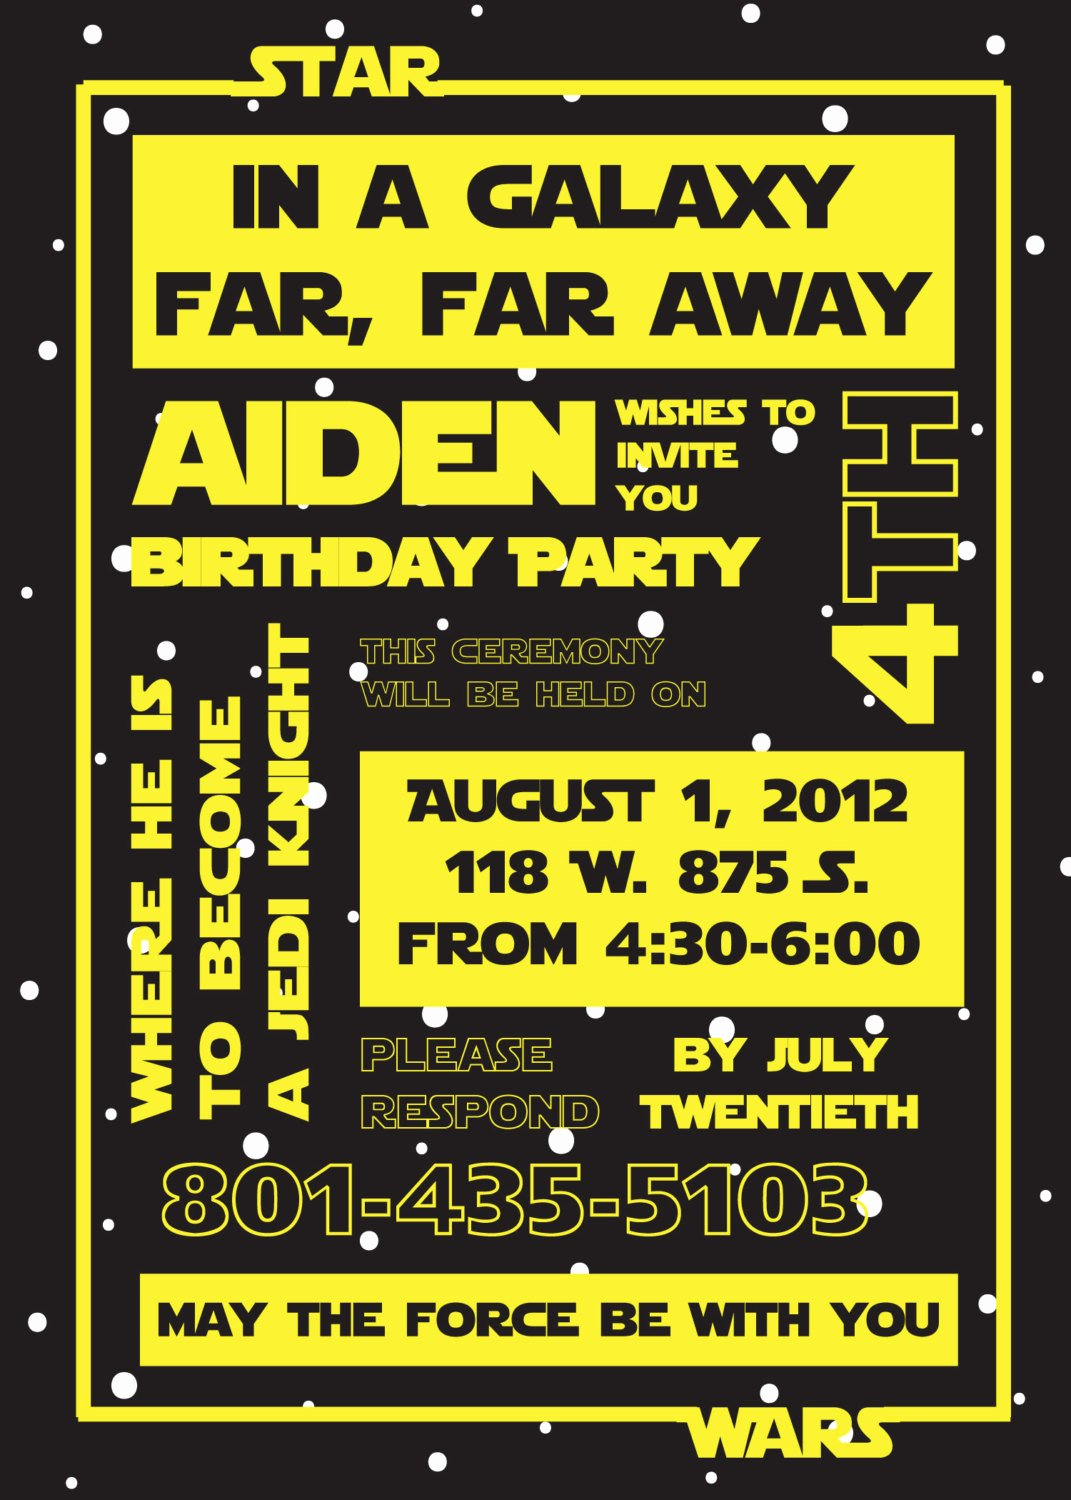 Star Wars Birthday Party Invitations Beautiful Free Star Wars Birthday Party Invitations Templates